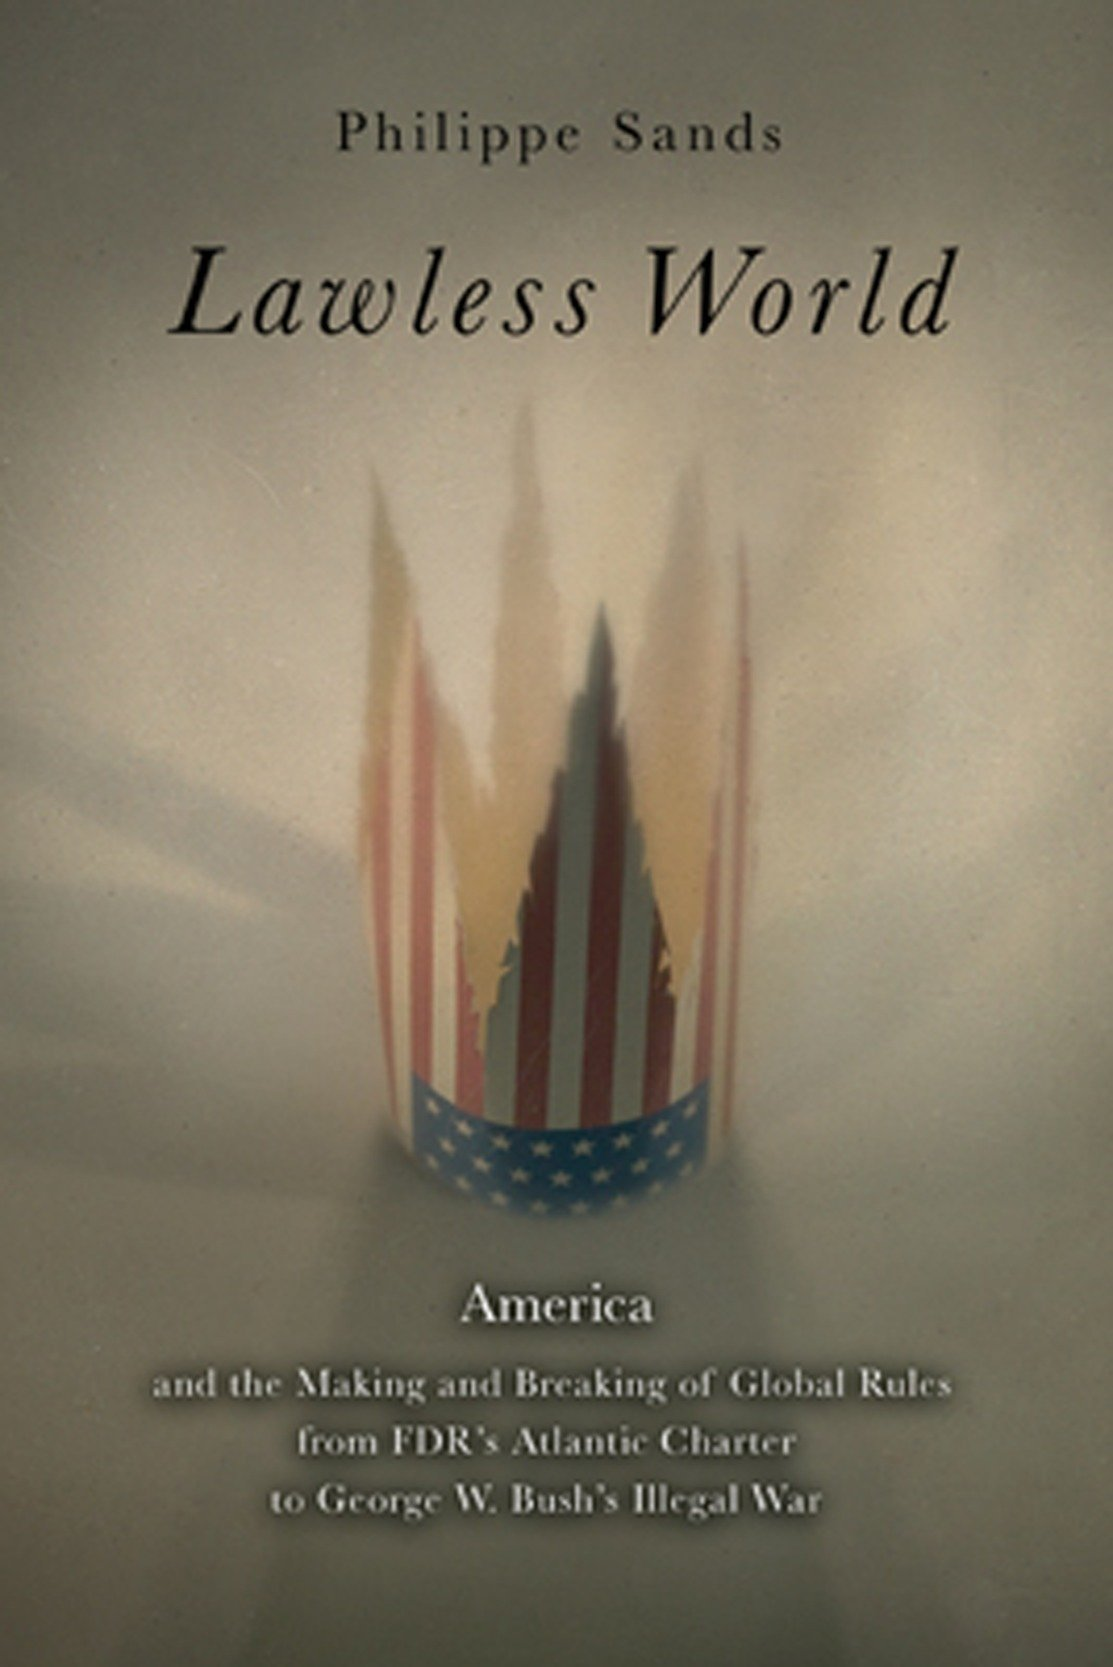 Download Lawless World: The Whistle-Blowing Account of How Bush and Blair Are Taking the Law into TheirO wn Hands pdf epub